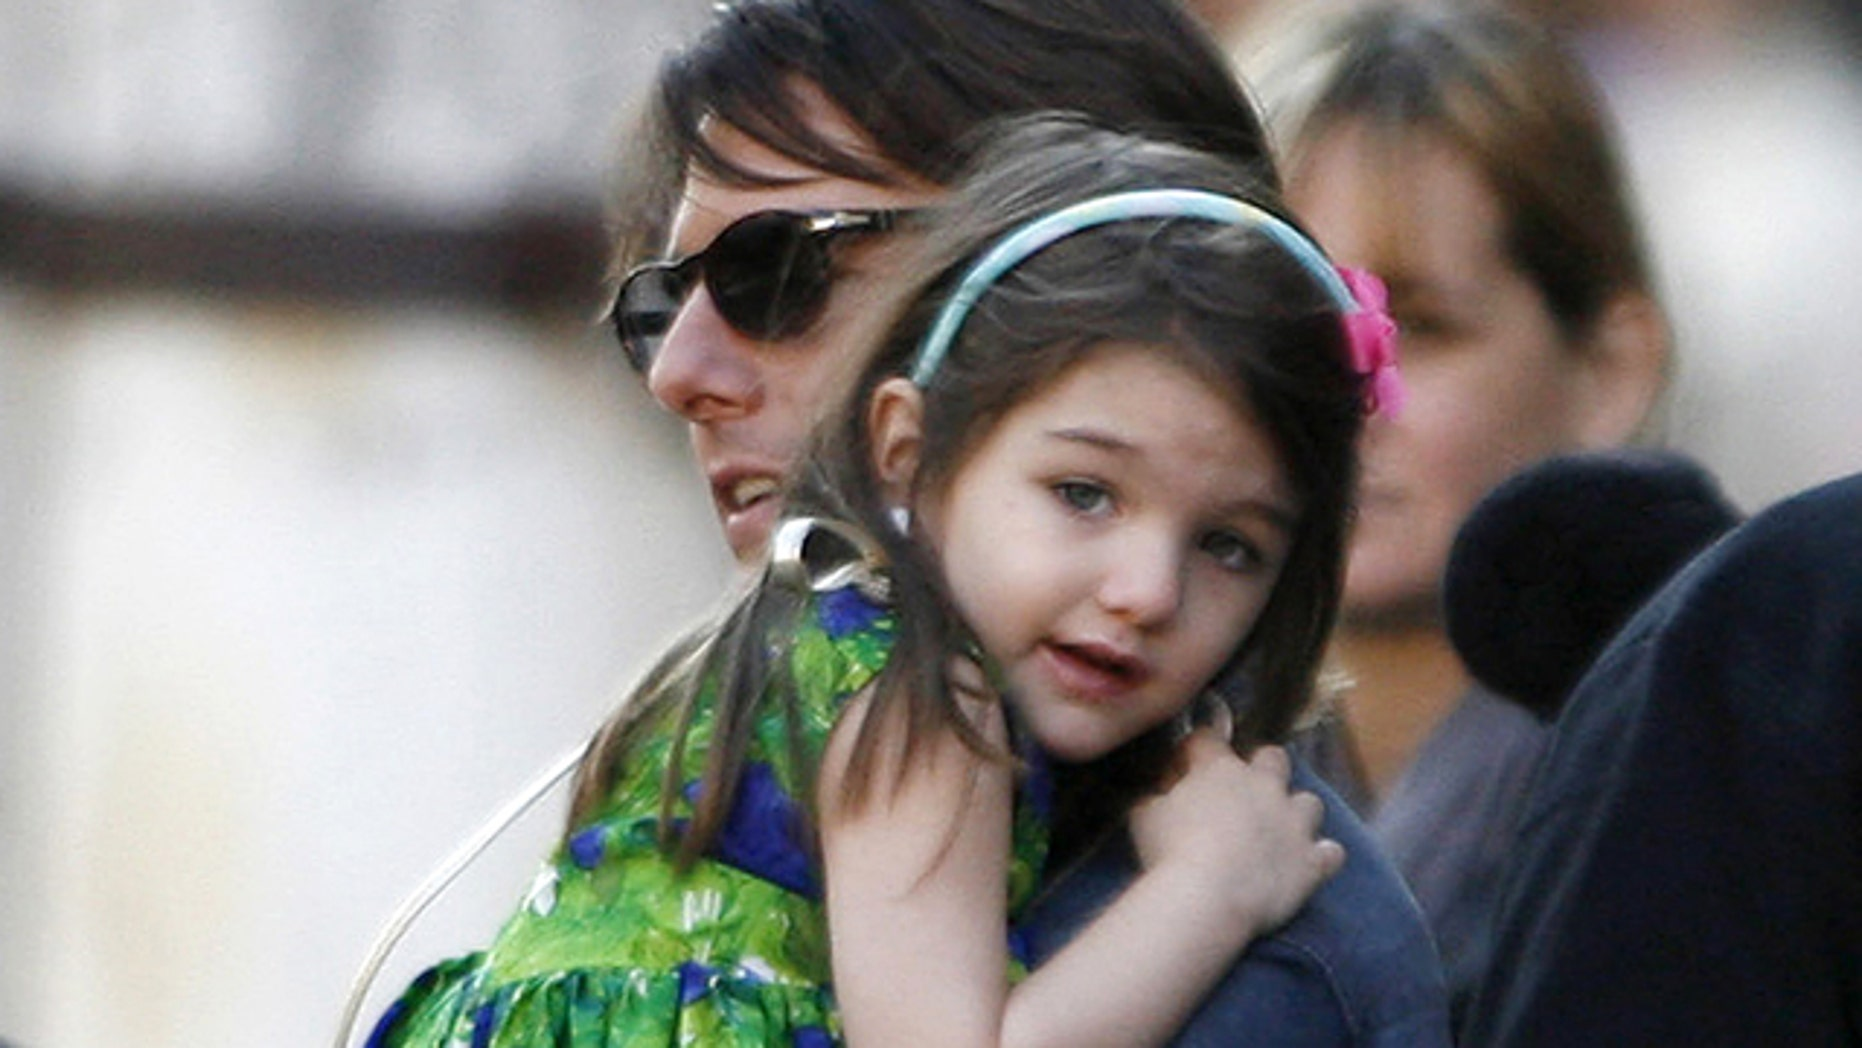 """Tom Cruise holds his daughter Suri during a break in the filming of """"Knight & Day"""", a movie directed by U.S. director James Mangold in Seville, southern Spain, December 11, 2009."""